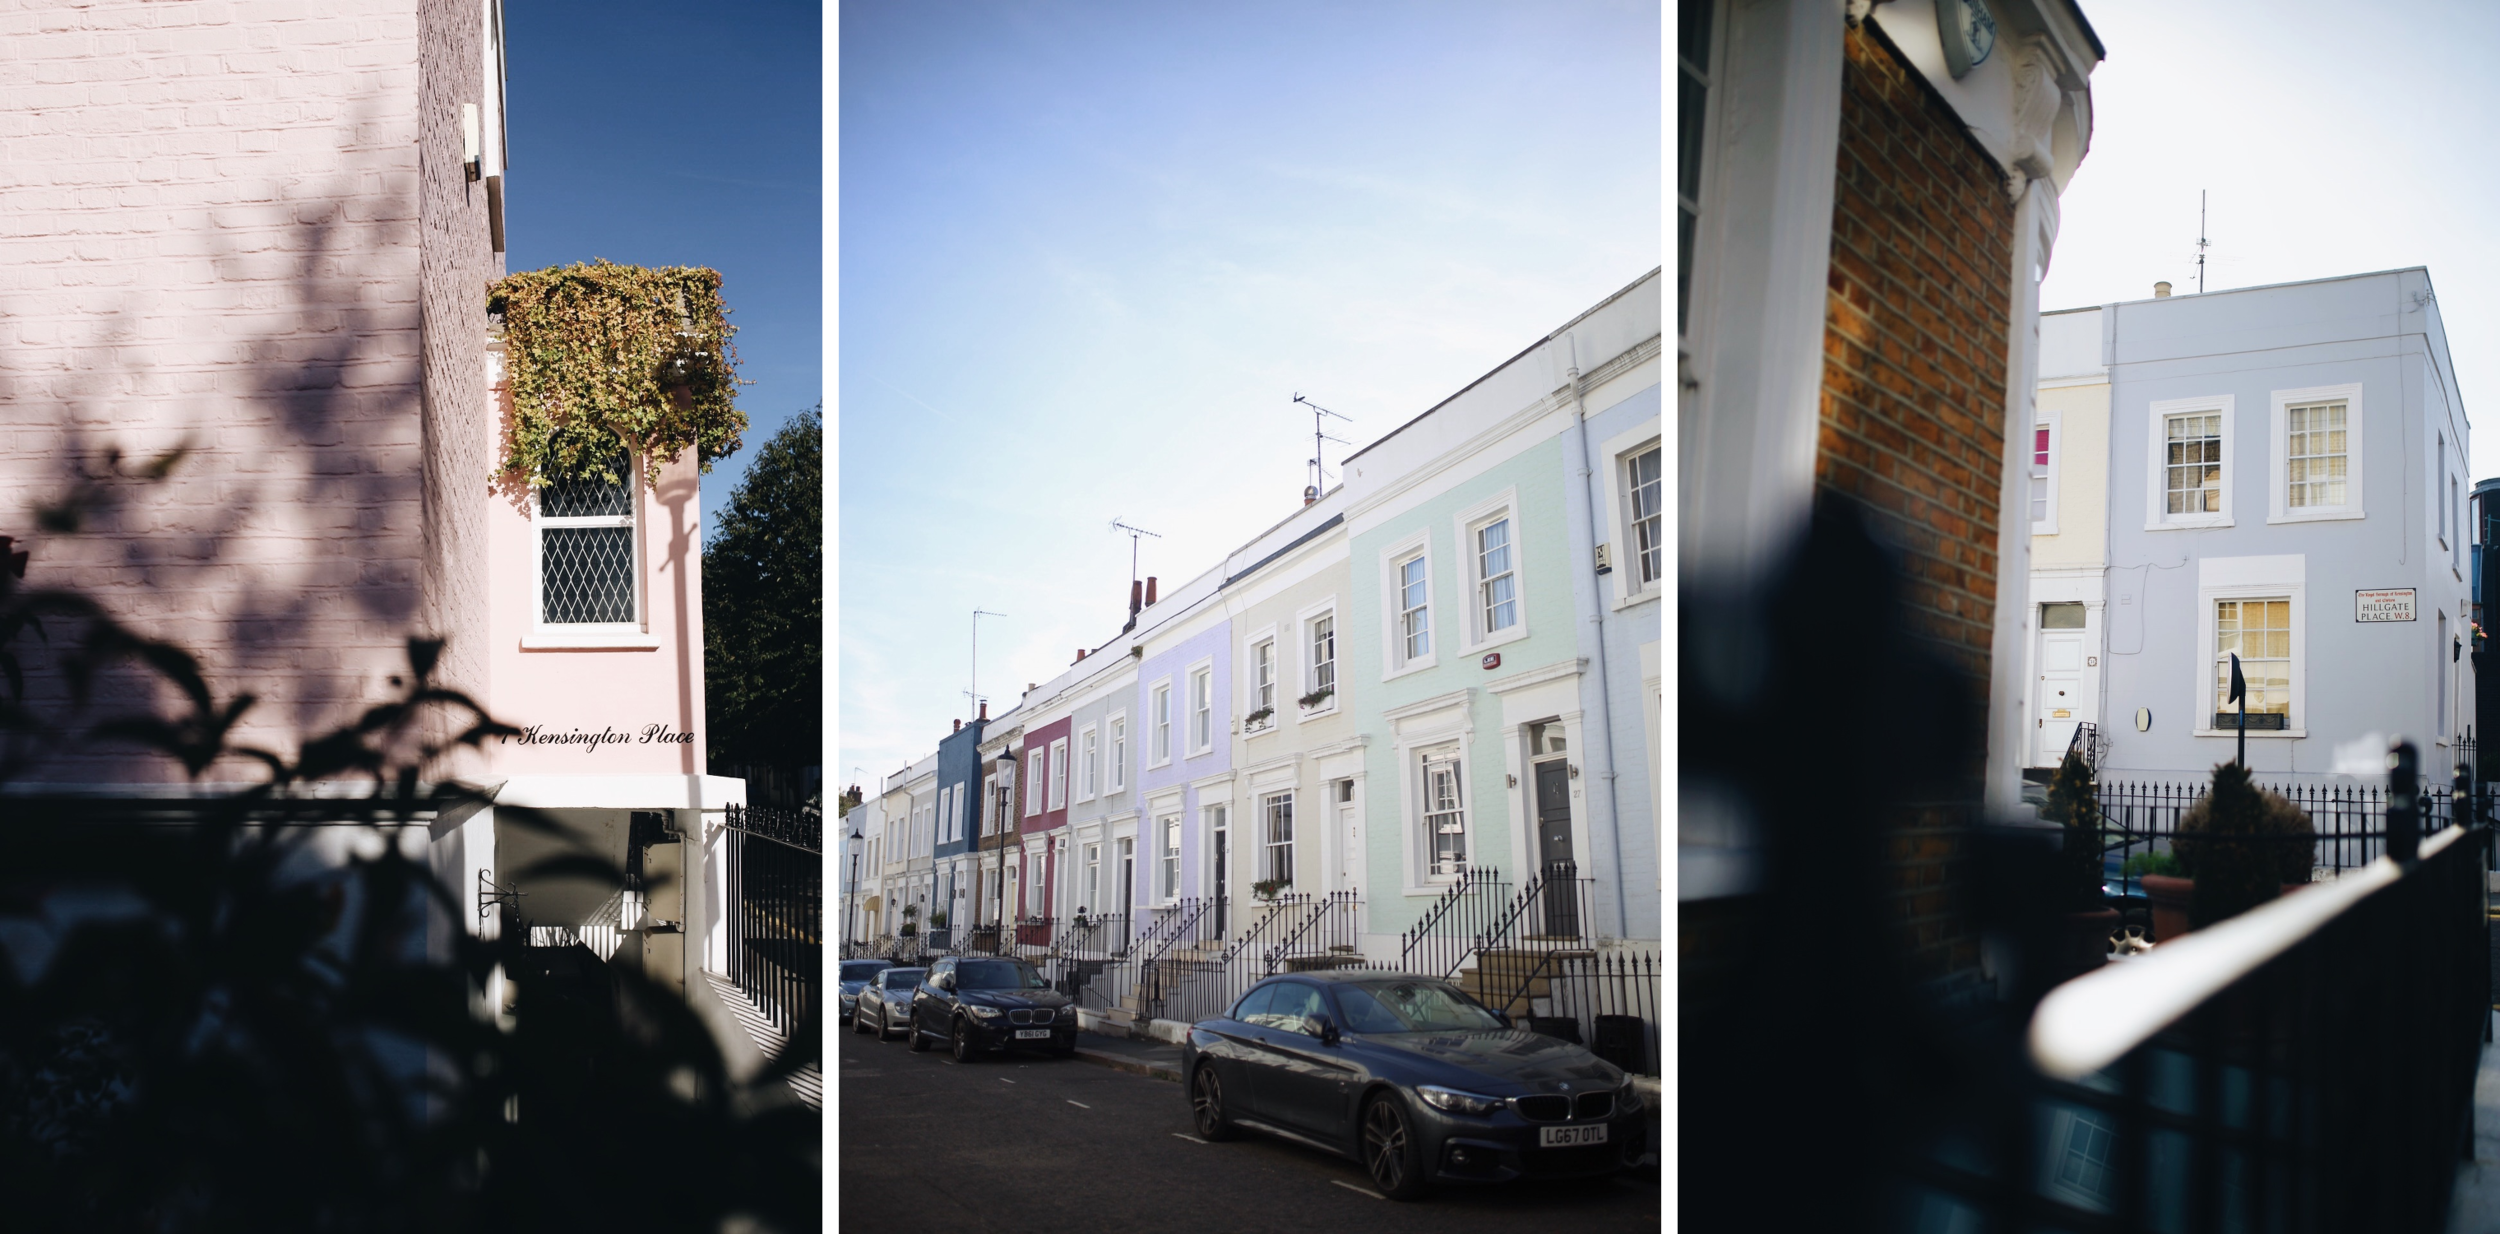 notting-hill-rues-maisons-victoriennes-londres.png